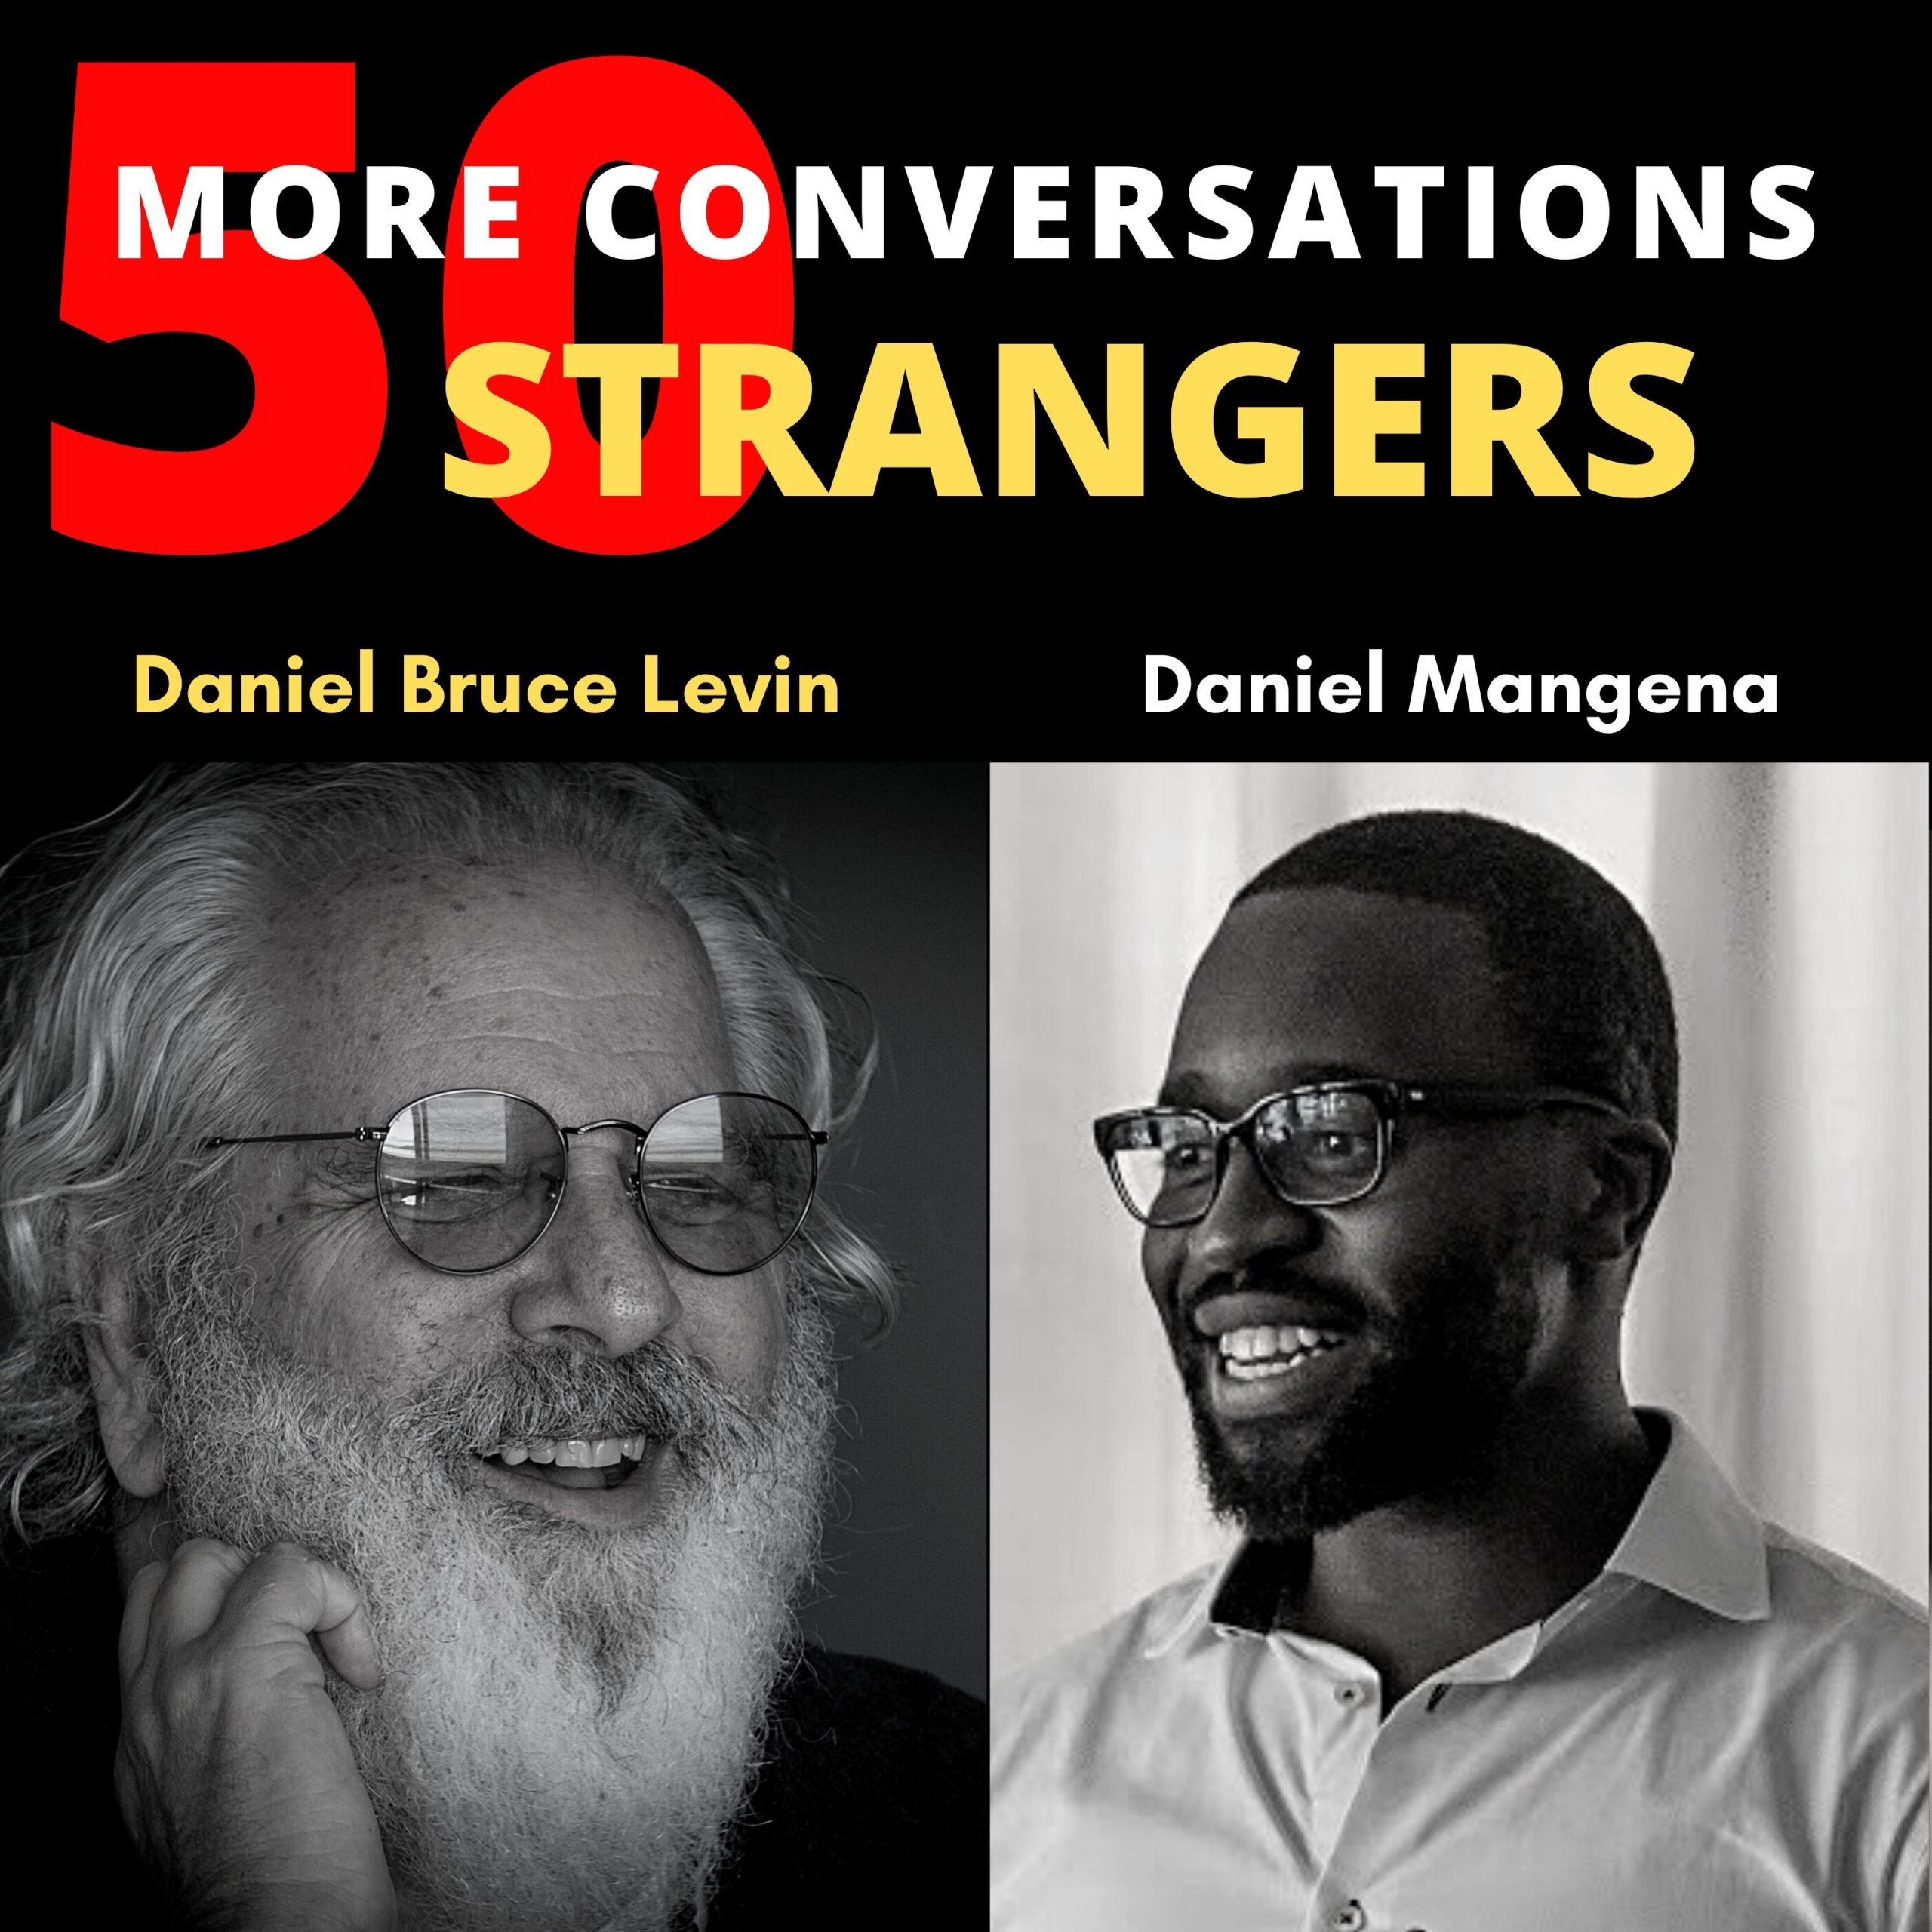 50 More Conversations with 50 More Strangers with Daniel Mangena